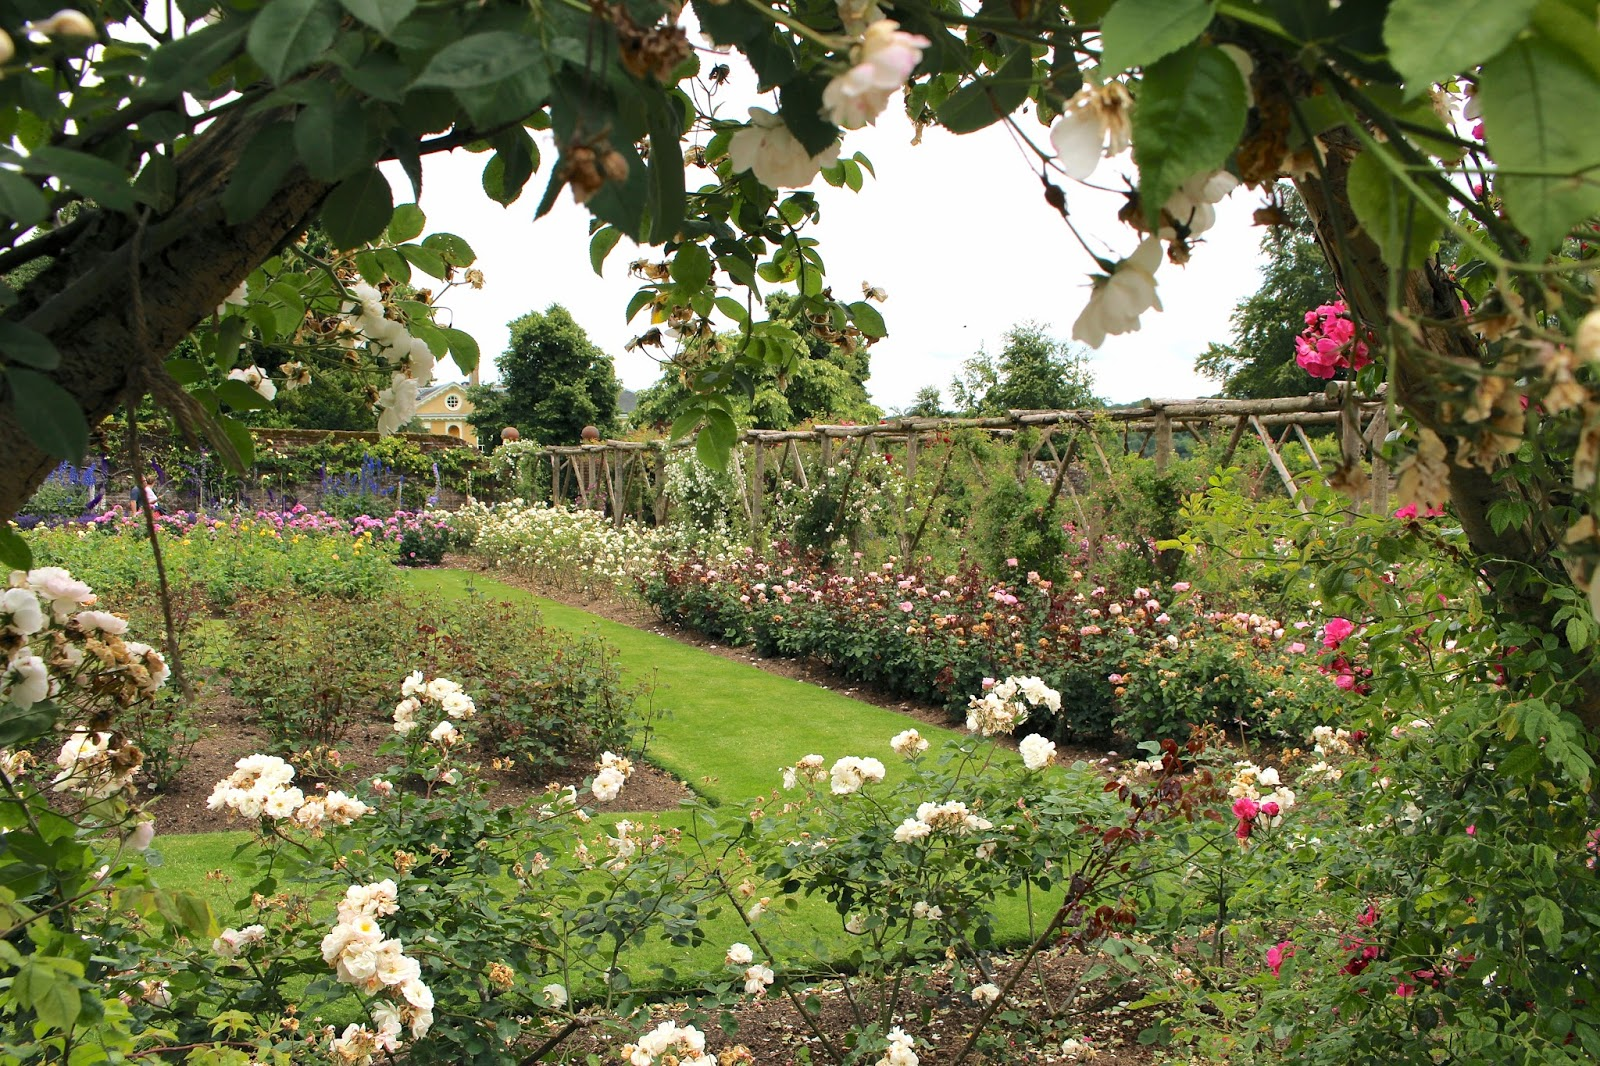 Lifestyle blogger visit to english walled gardens